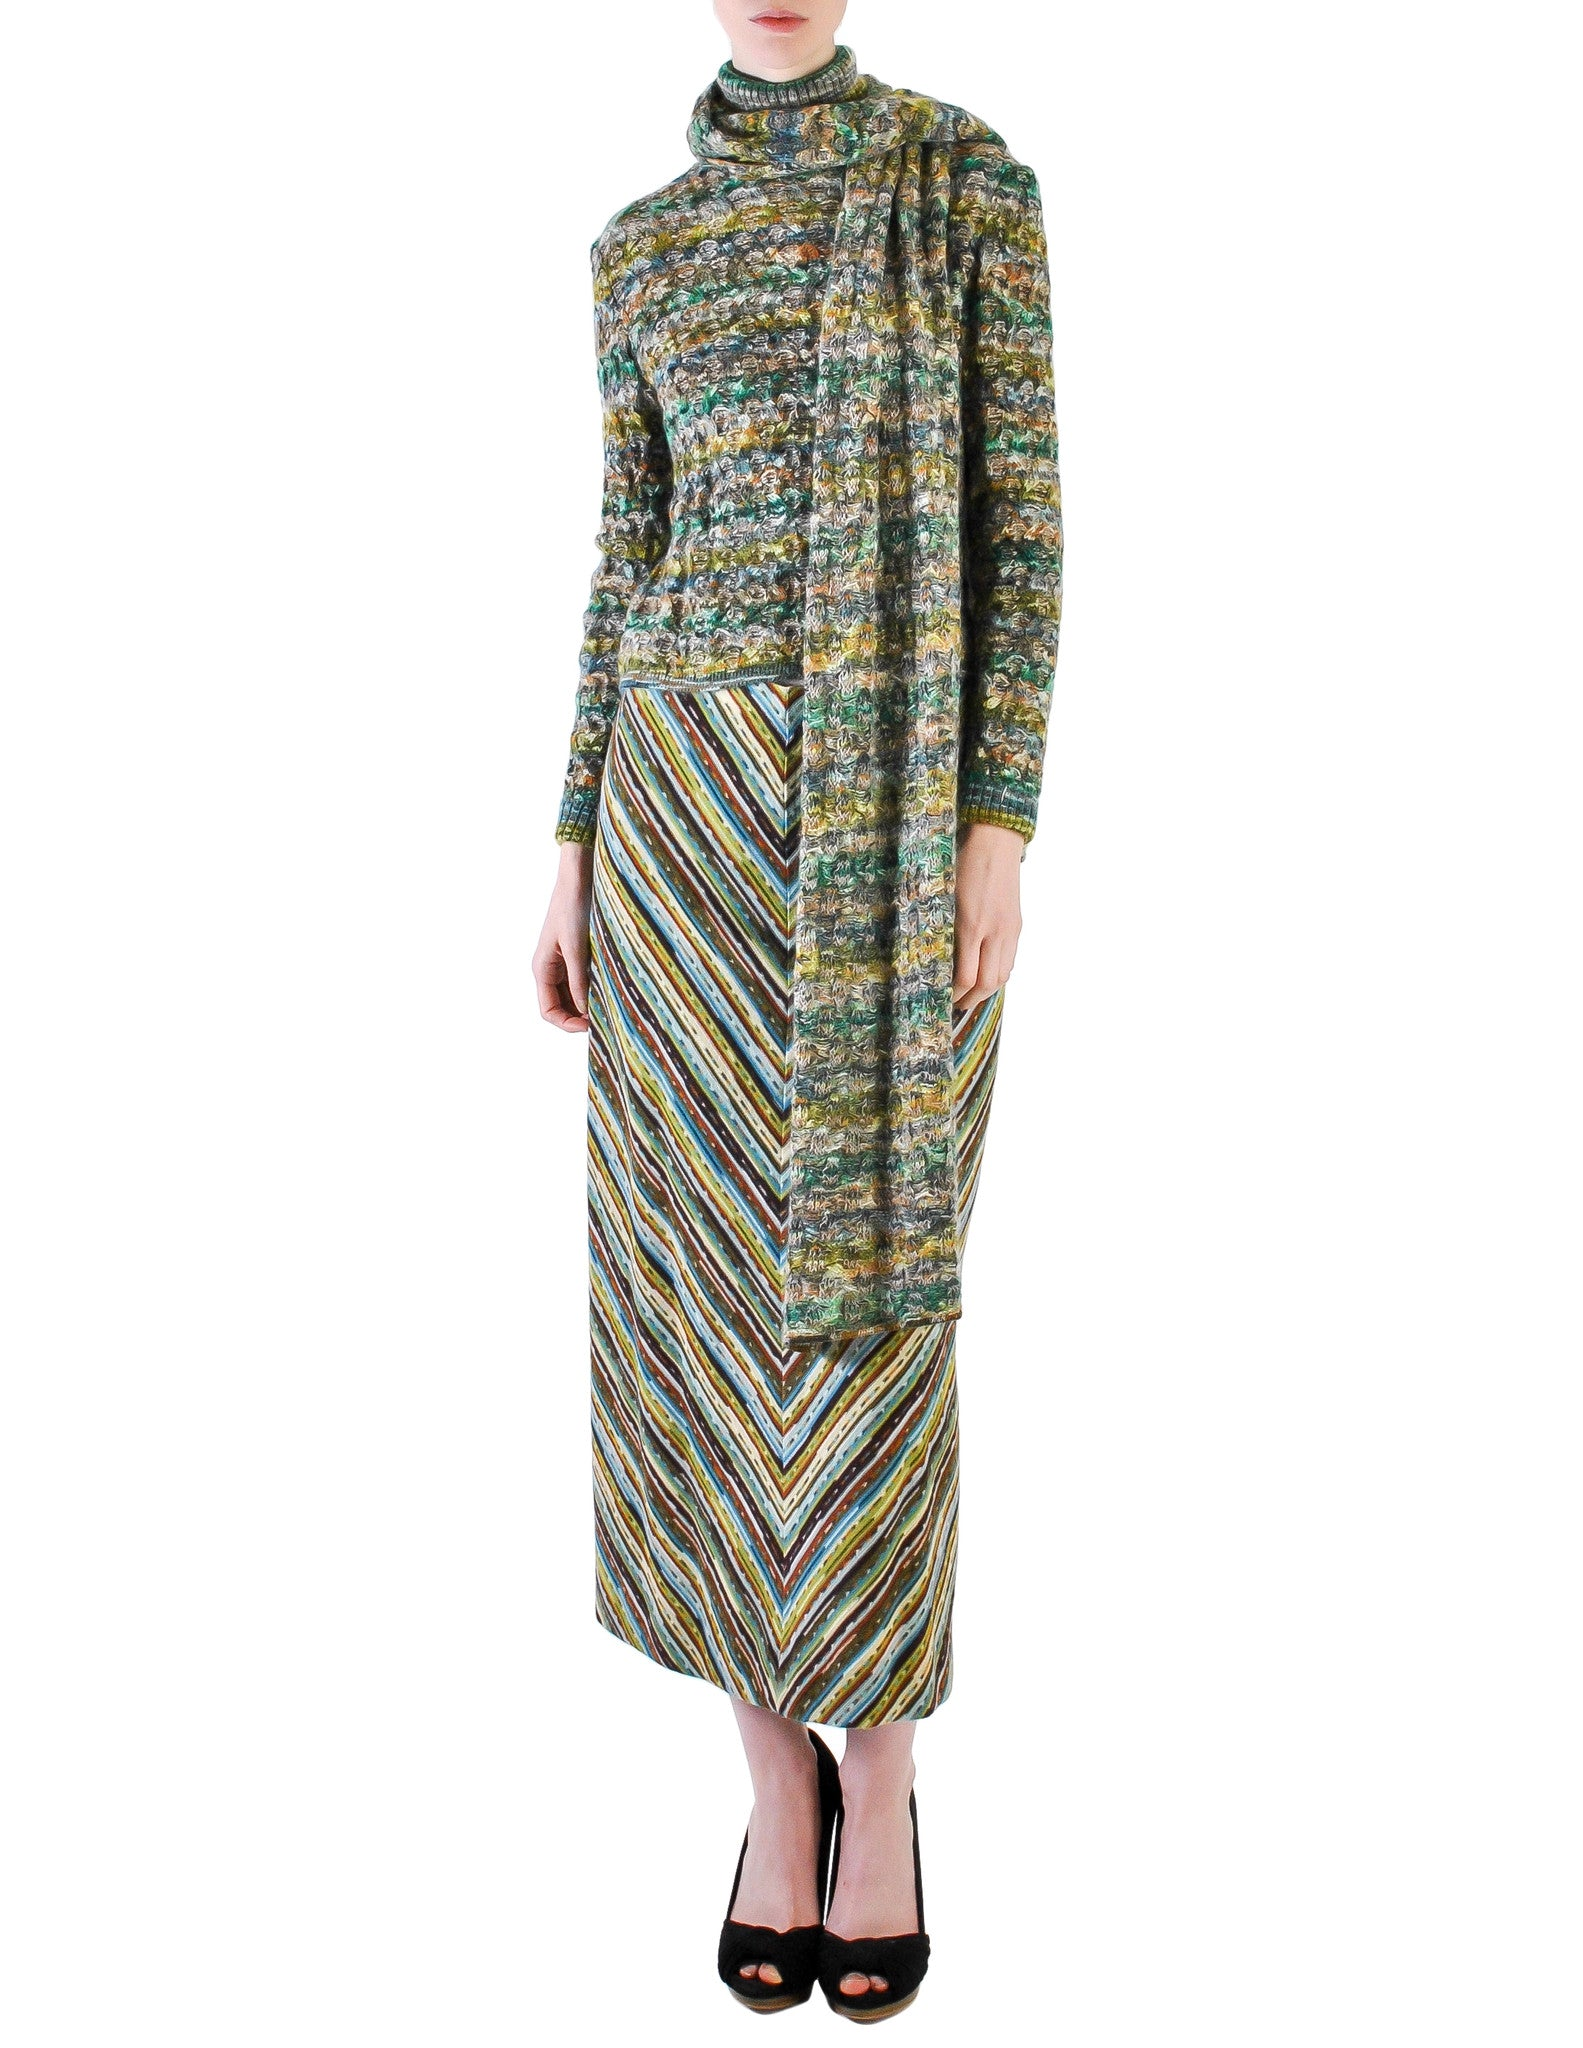 Missoni Vintage Green Patterned Knit Sweater, Scarf and Skirt Ensemble Set - Amarcord Vintage Fashion  - 1